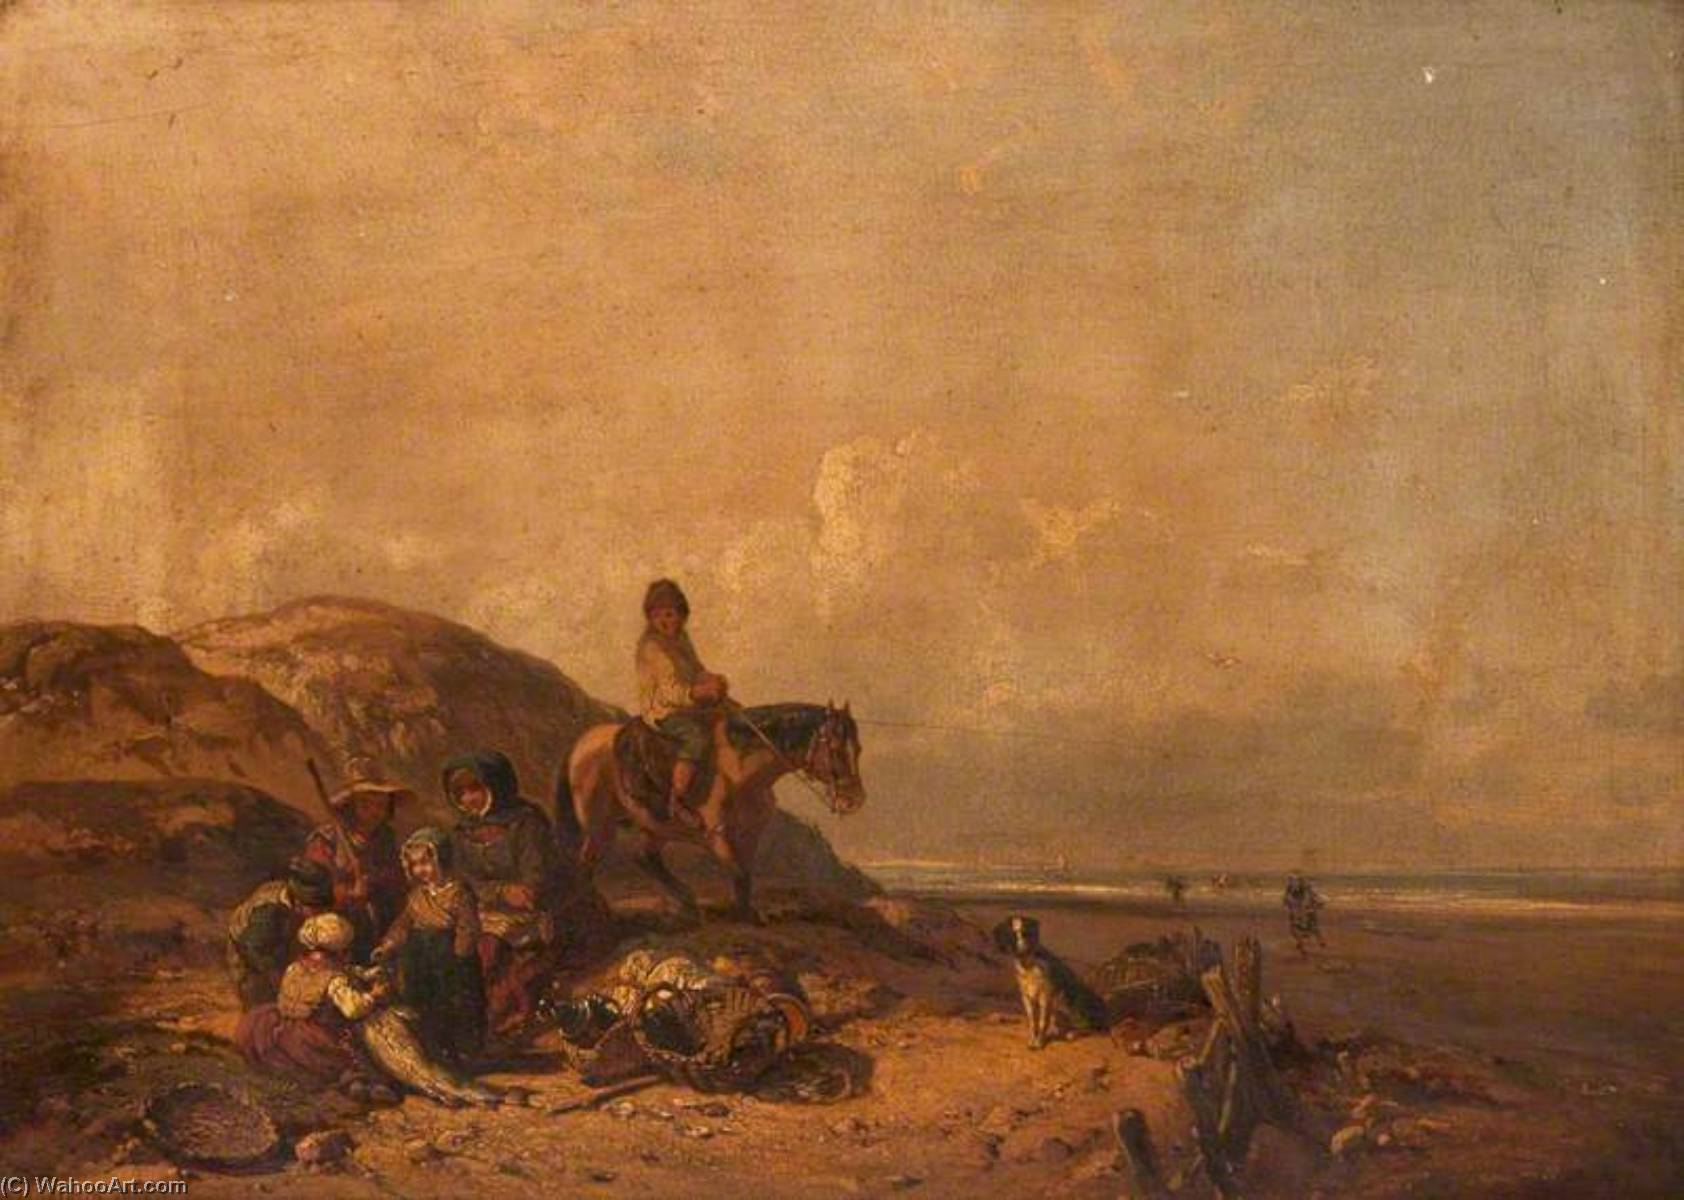 Shore Scene with Figures by Charles Louis Mozin (1806-1862) | WahooArt.com